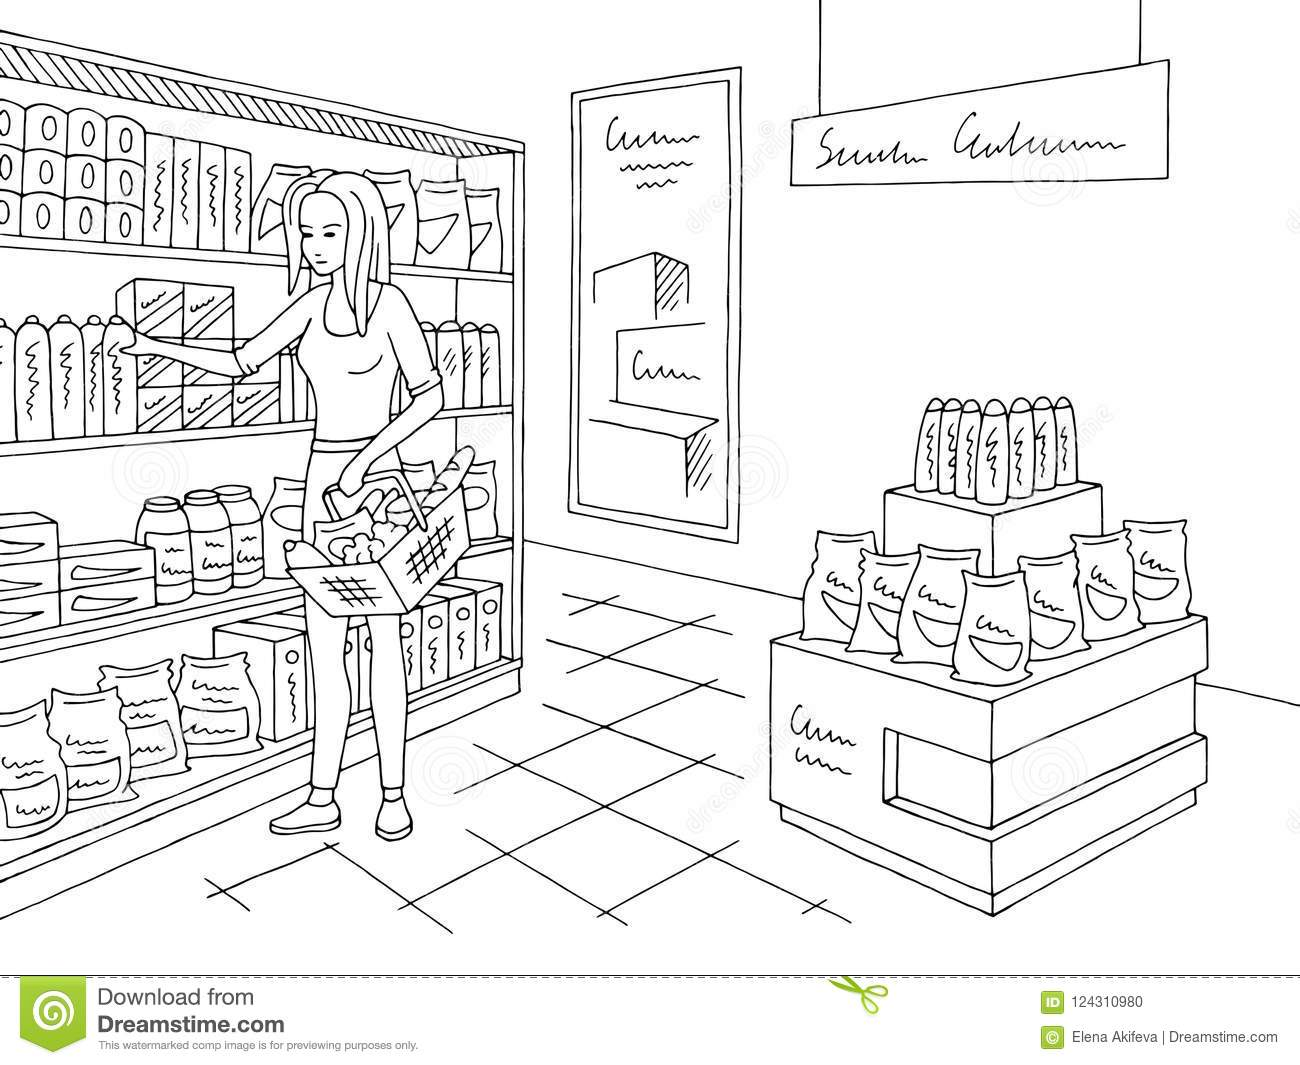 Grocery Store Shop Interior Black White Graphic Sketch Illustration.